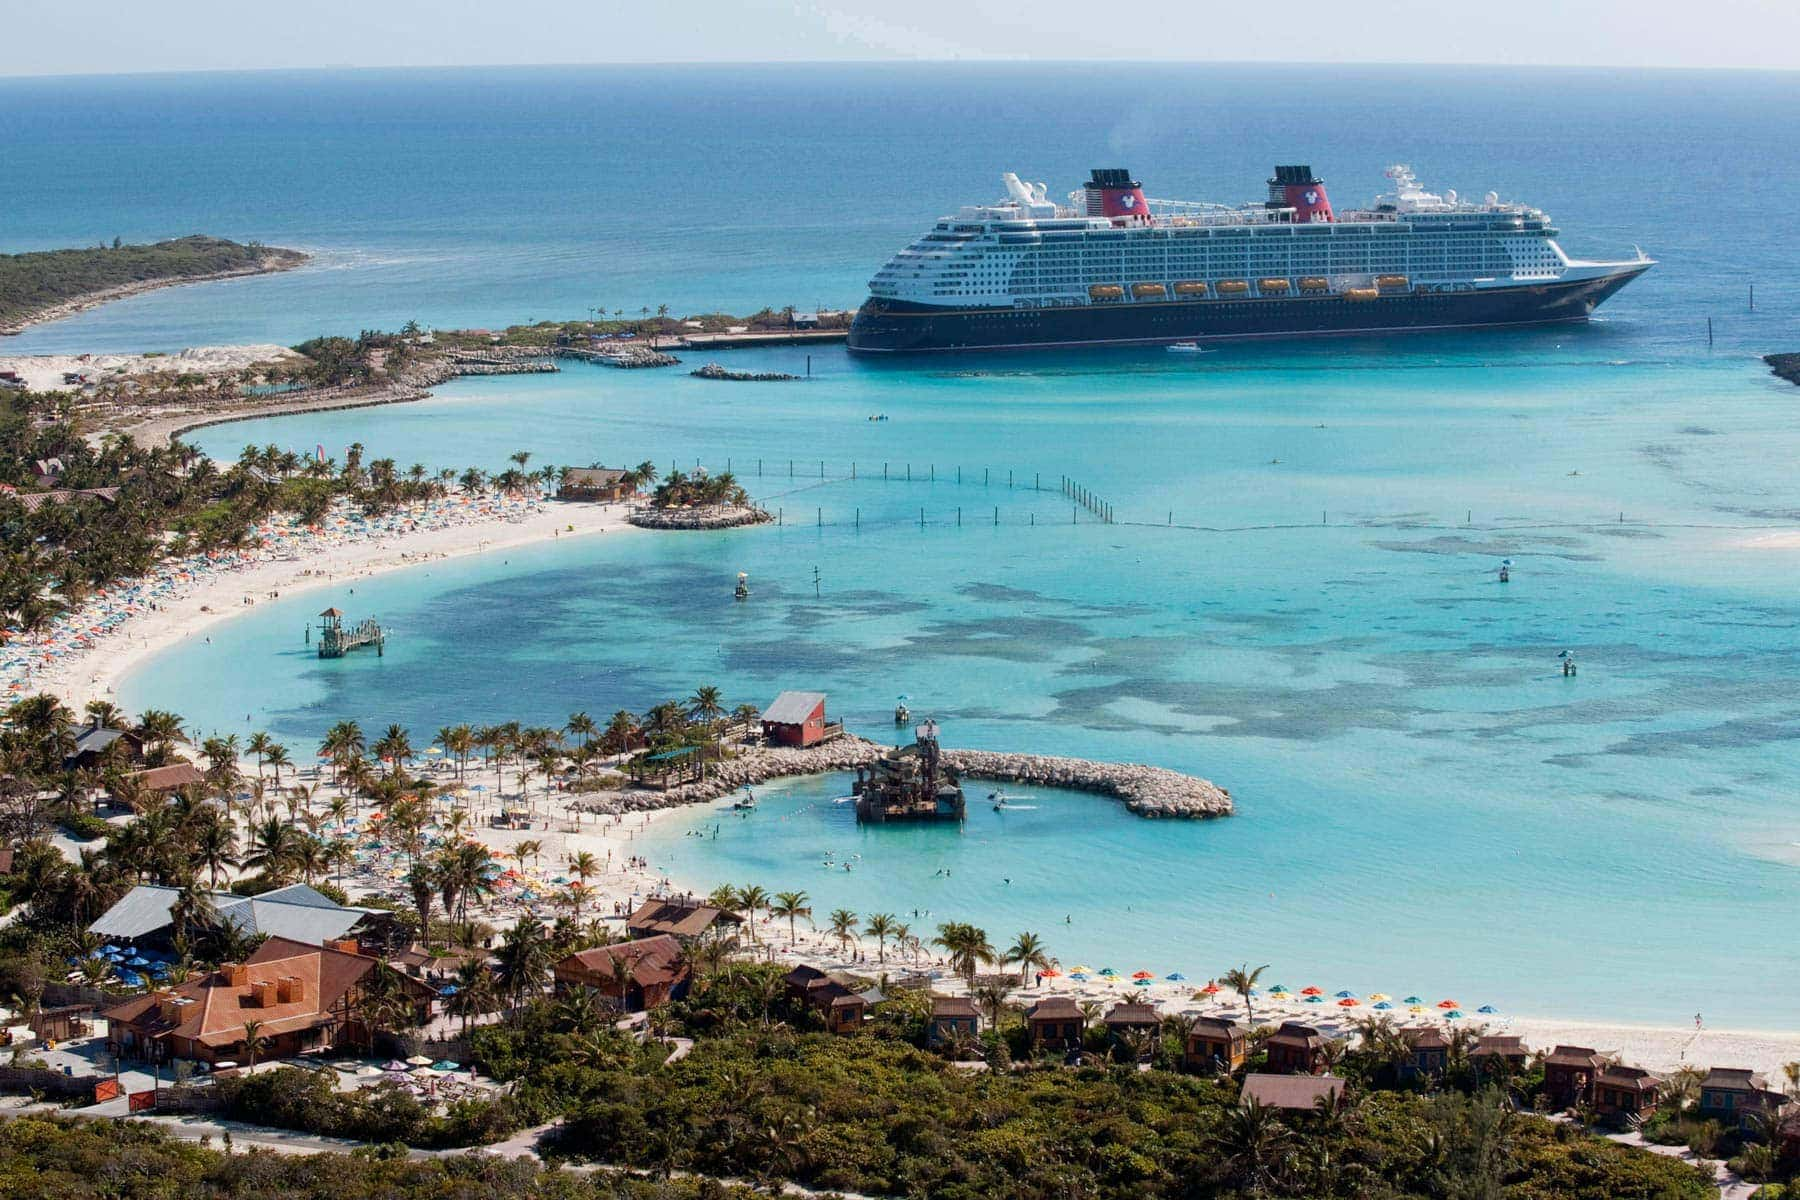 Disney Cruise docks at Castaway Cay